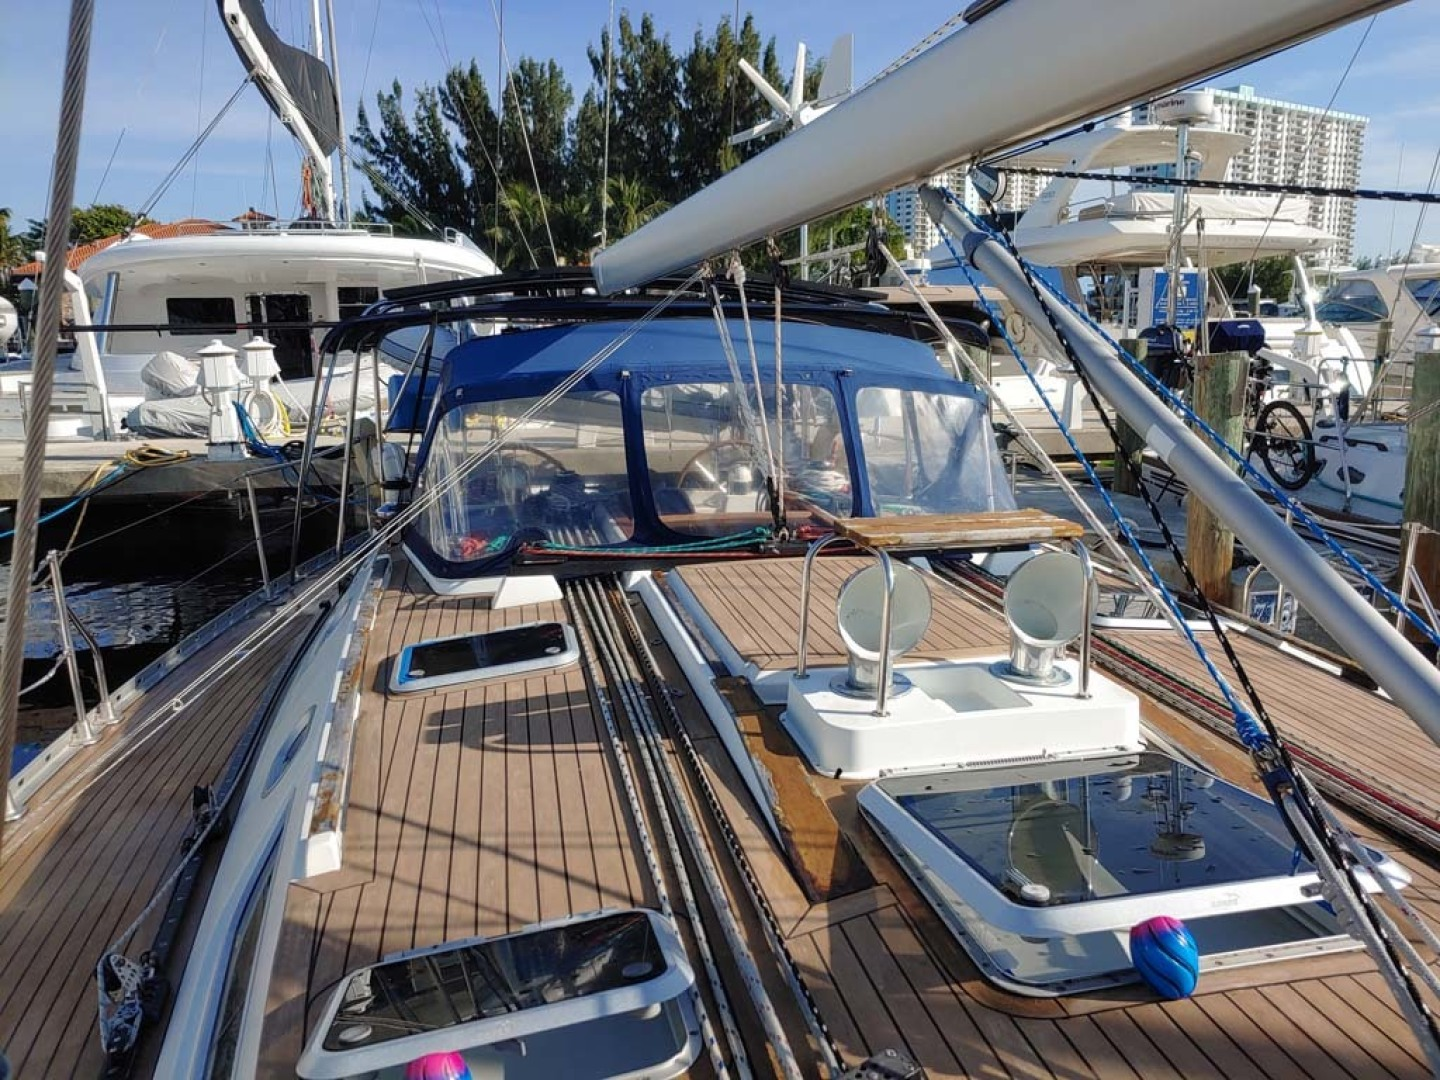 Jeanneau-Sun Odyssey 52.2 2001-Perseverance Hollywood-Florida-United States-Foredeck and Dodger-1631443 | Thumbnail